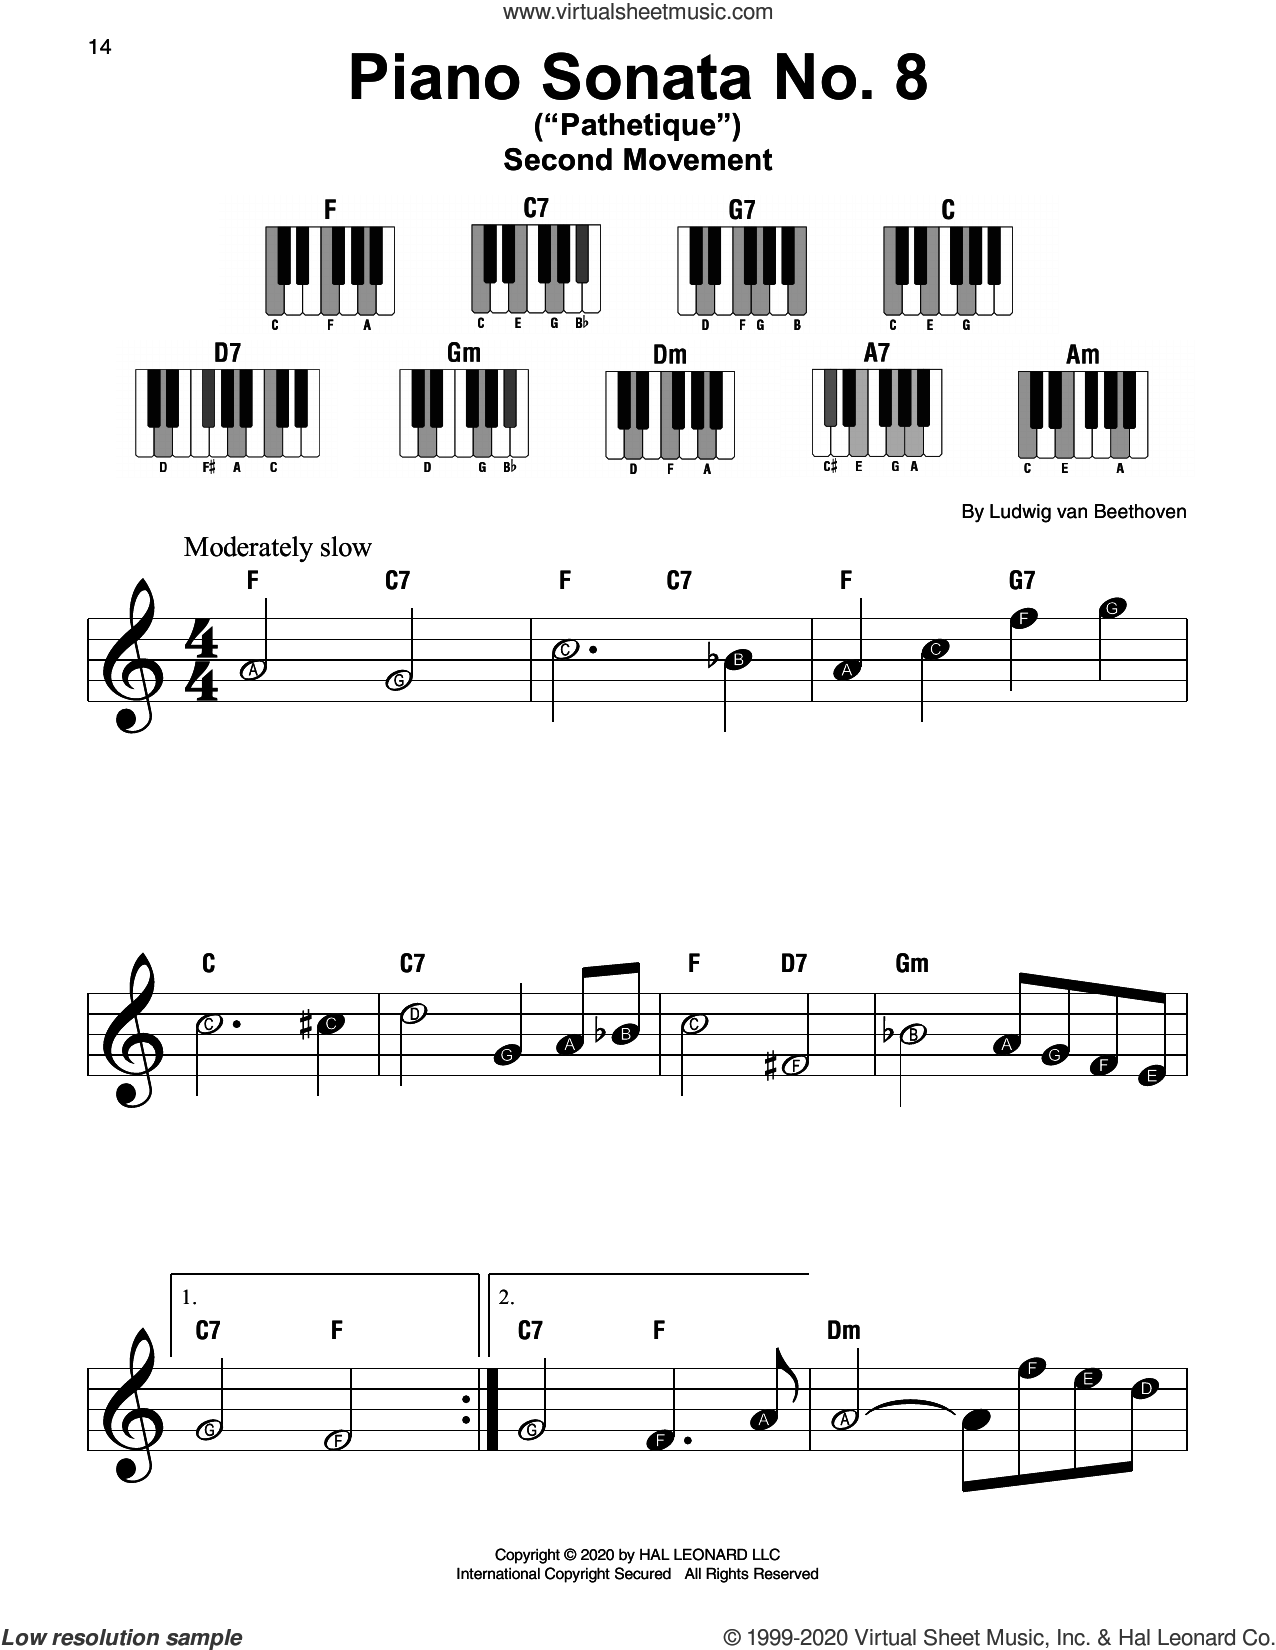 Piano Sonata No. 8 'Pathetique,' Second Movement sheet music for piano solo by Ludwig van Beethoven, classical score, beginner skill level